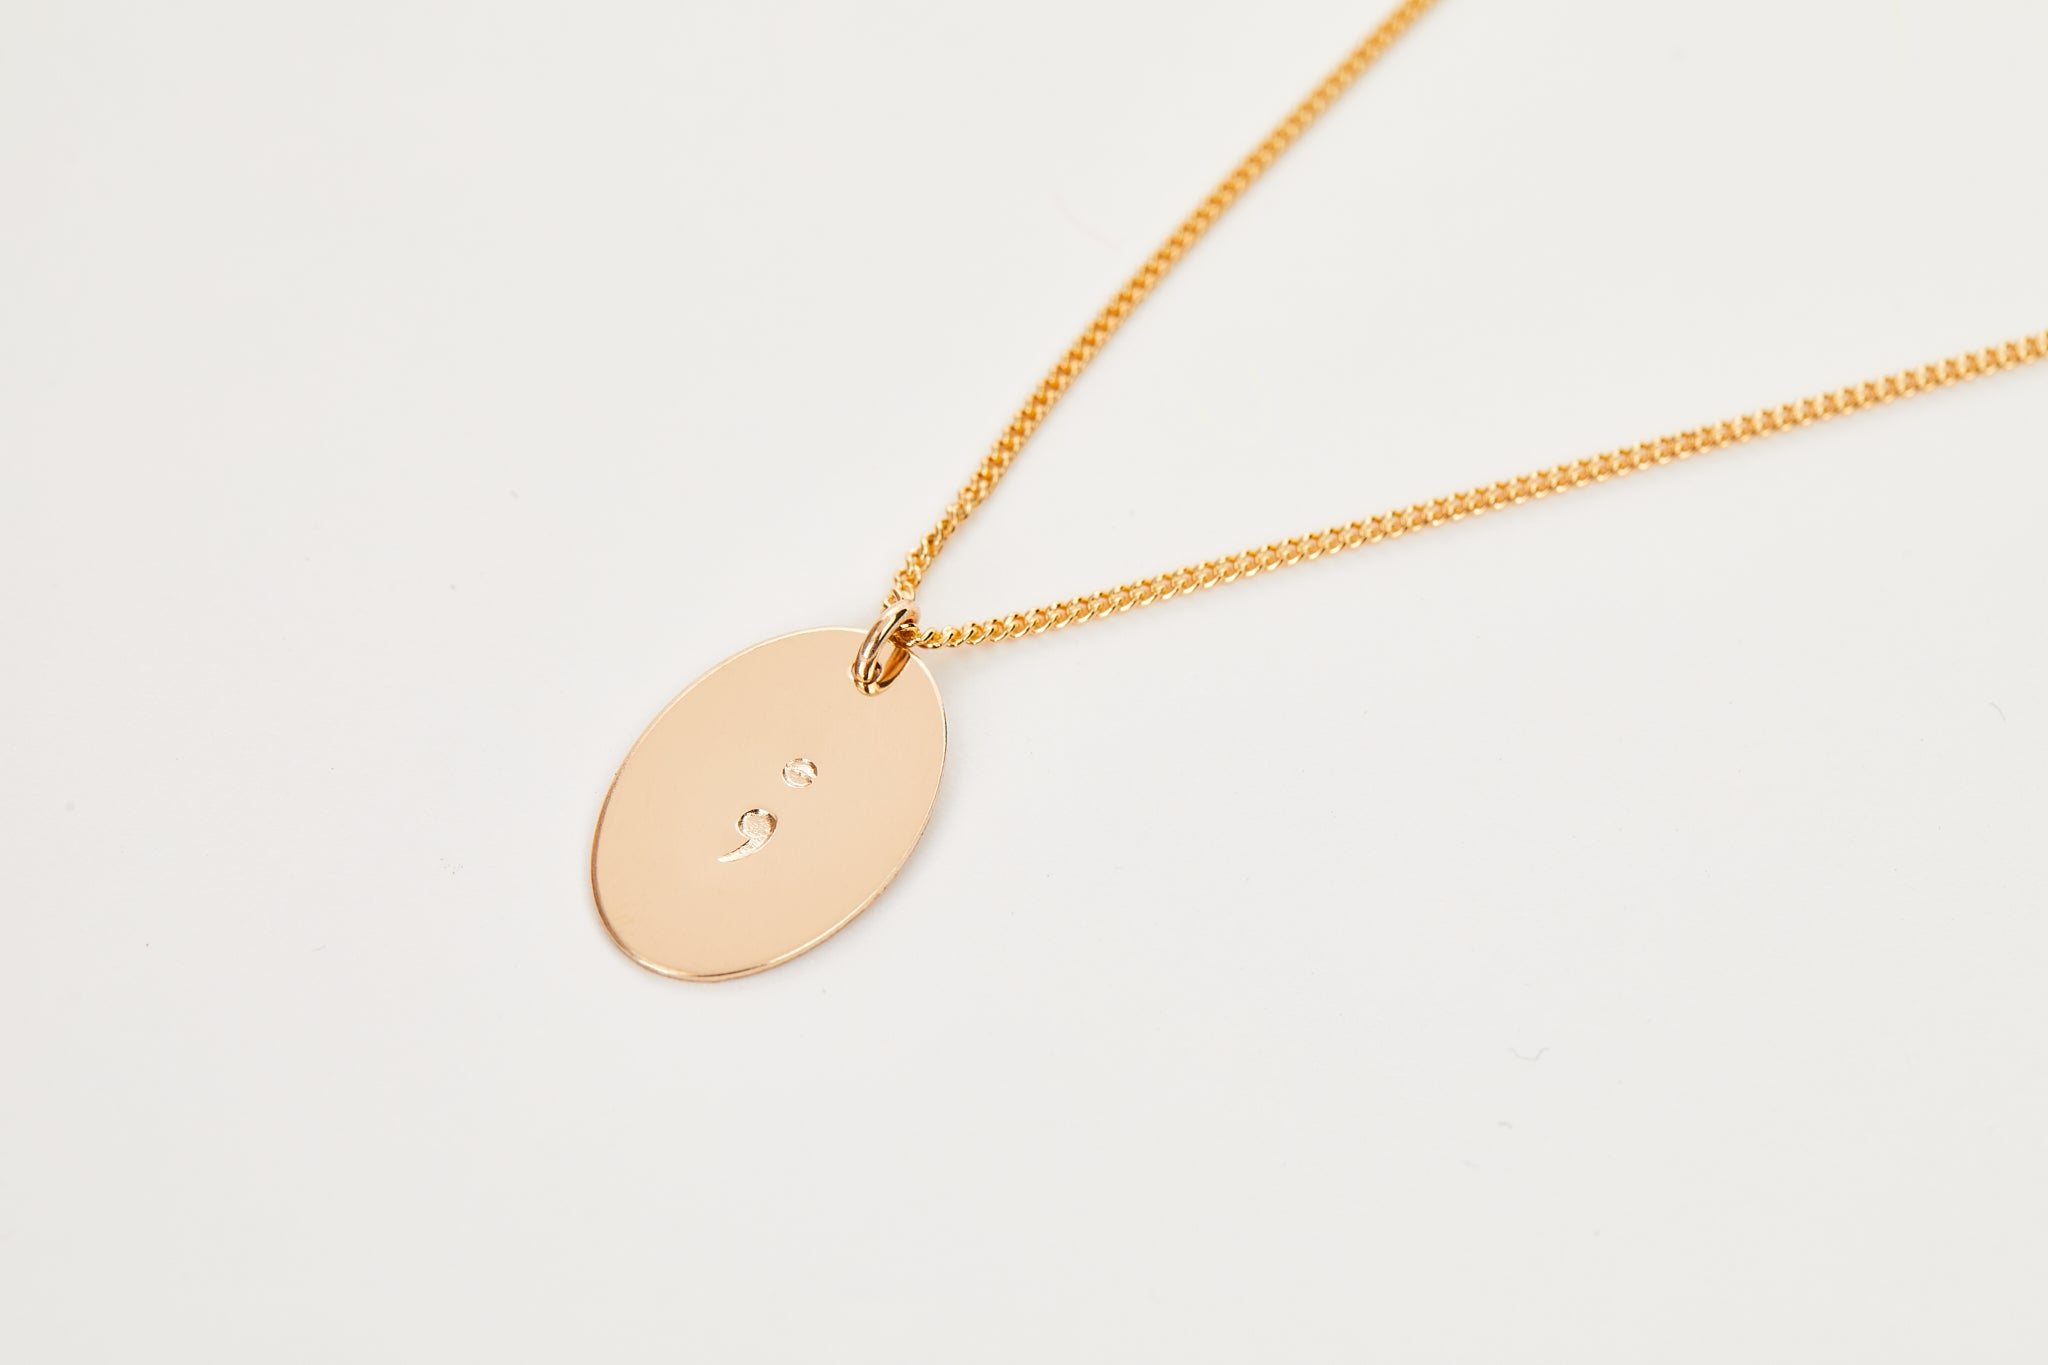 The Semicolon Necklace